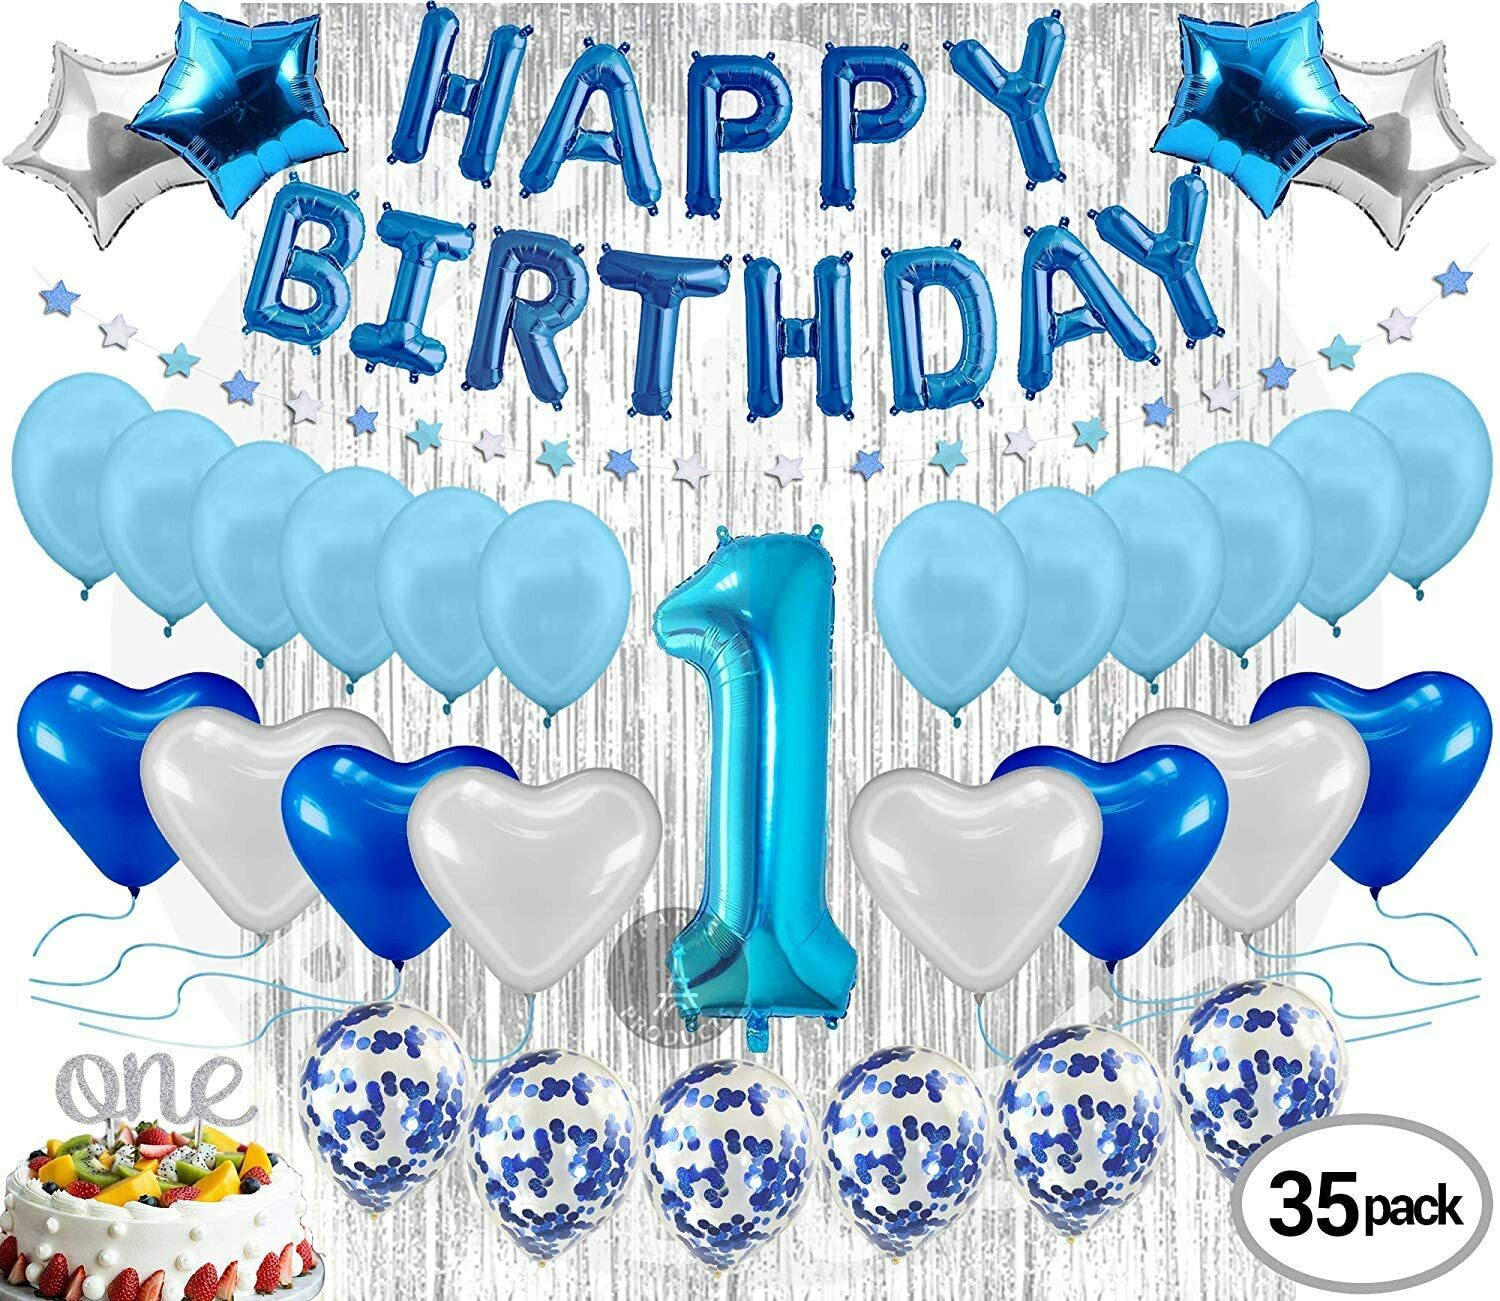 Buy Generic 1st Birthday Decoration For Baby Boy Kit Online Shop Home Garden On Carrefour Uae